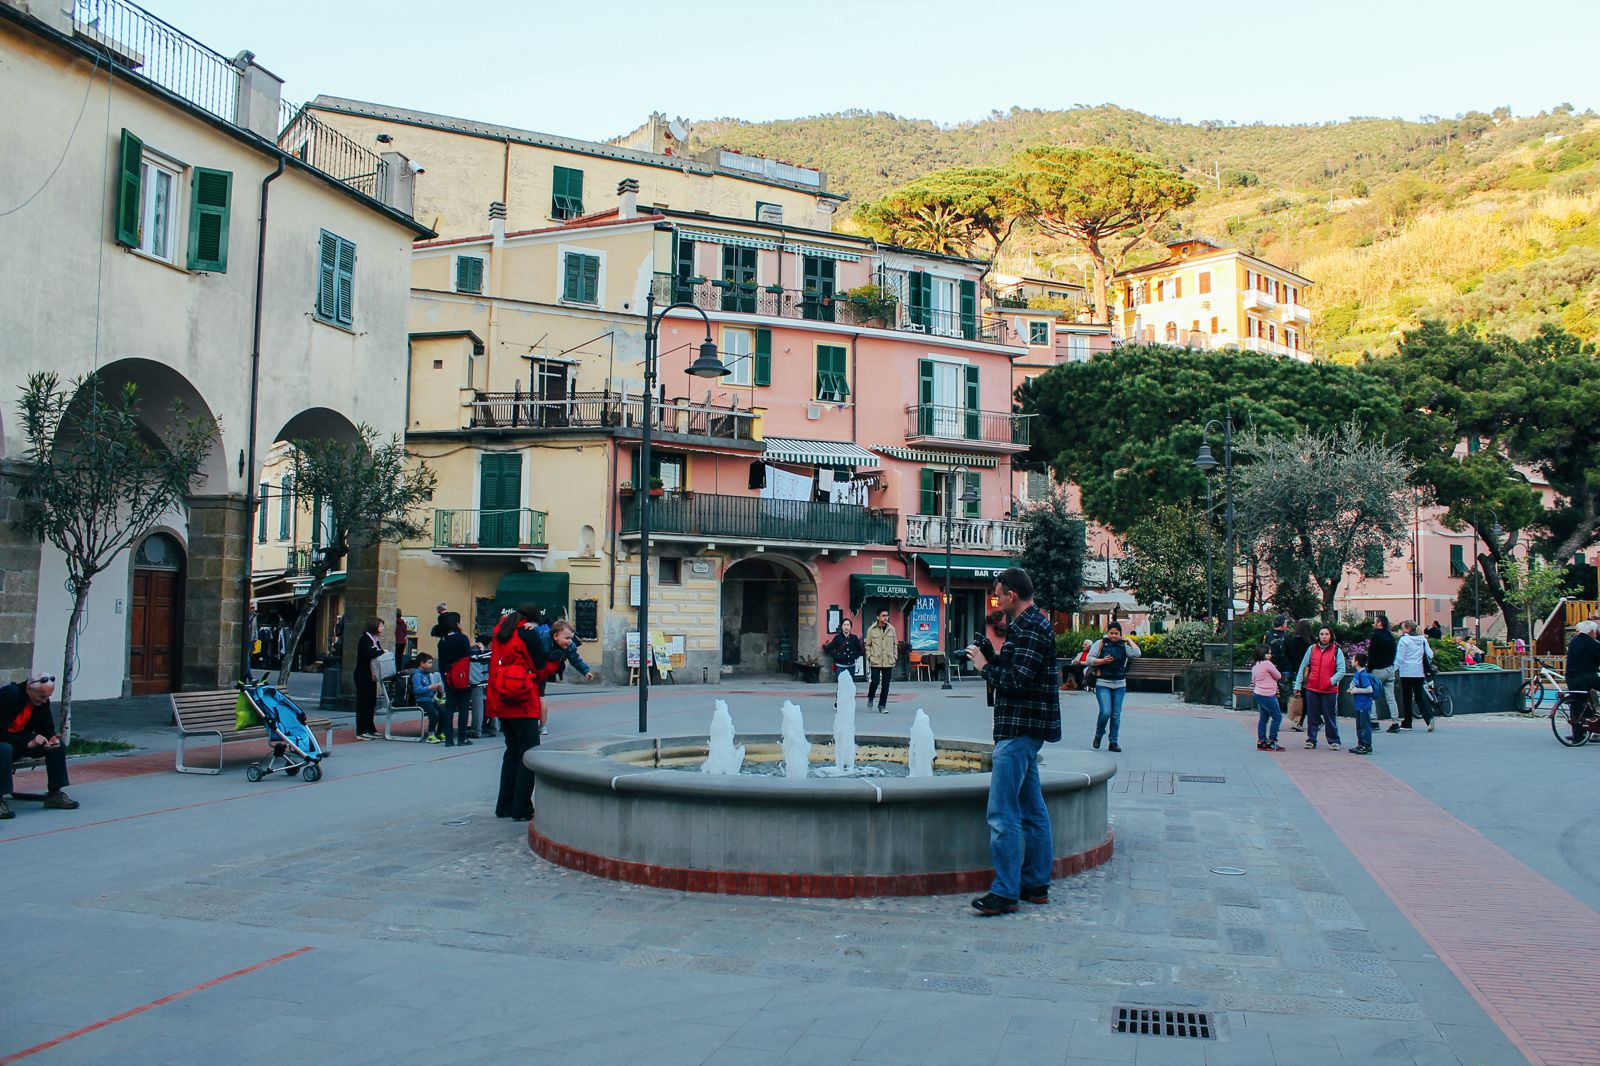 Monterosso al Mare in Cinque Terre, Italy - The Photo Diary! [5 of 5] (7)